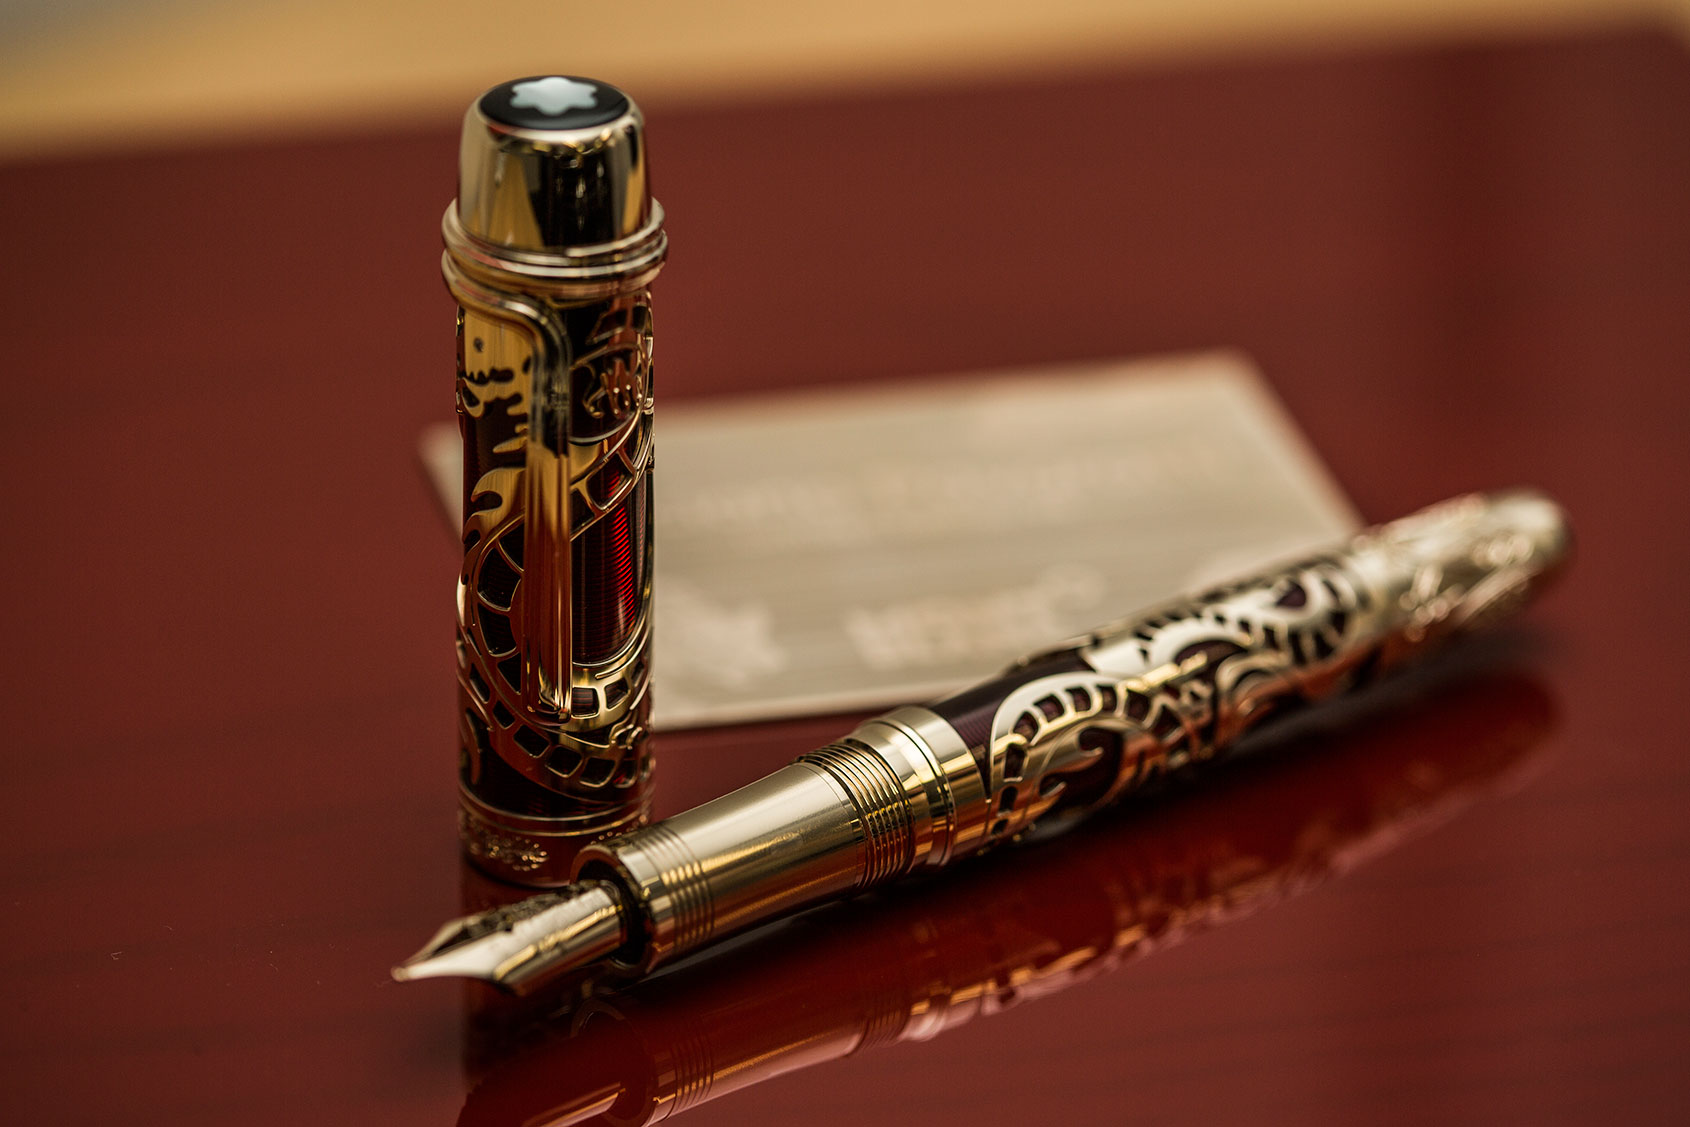 montblanc-writing-instrument-8